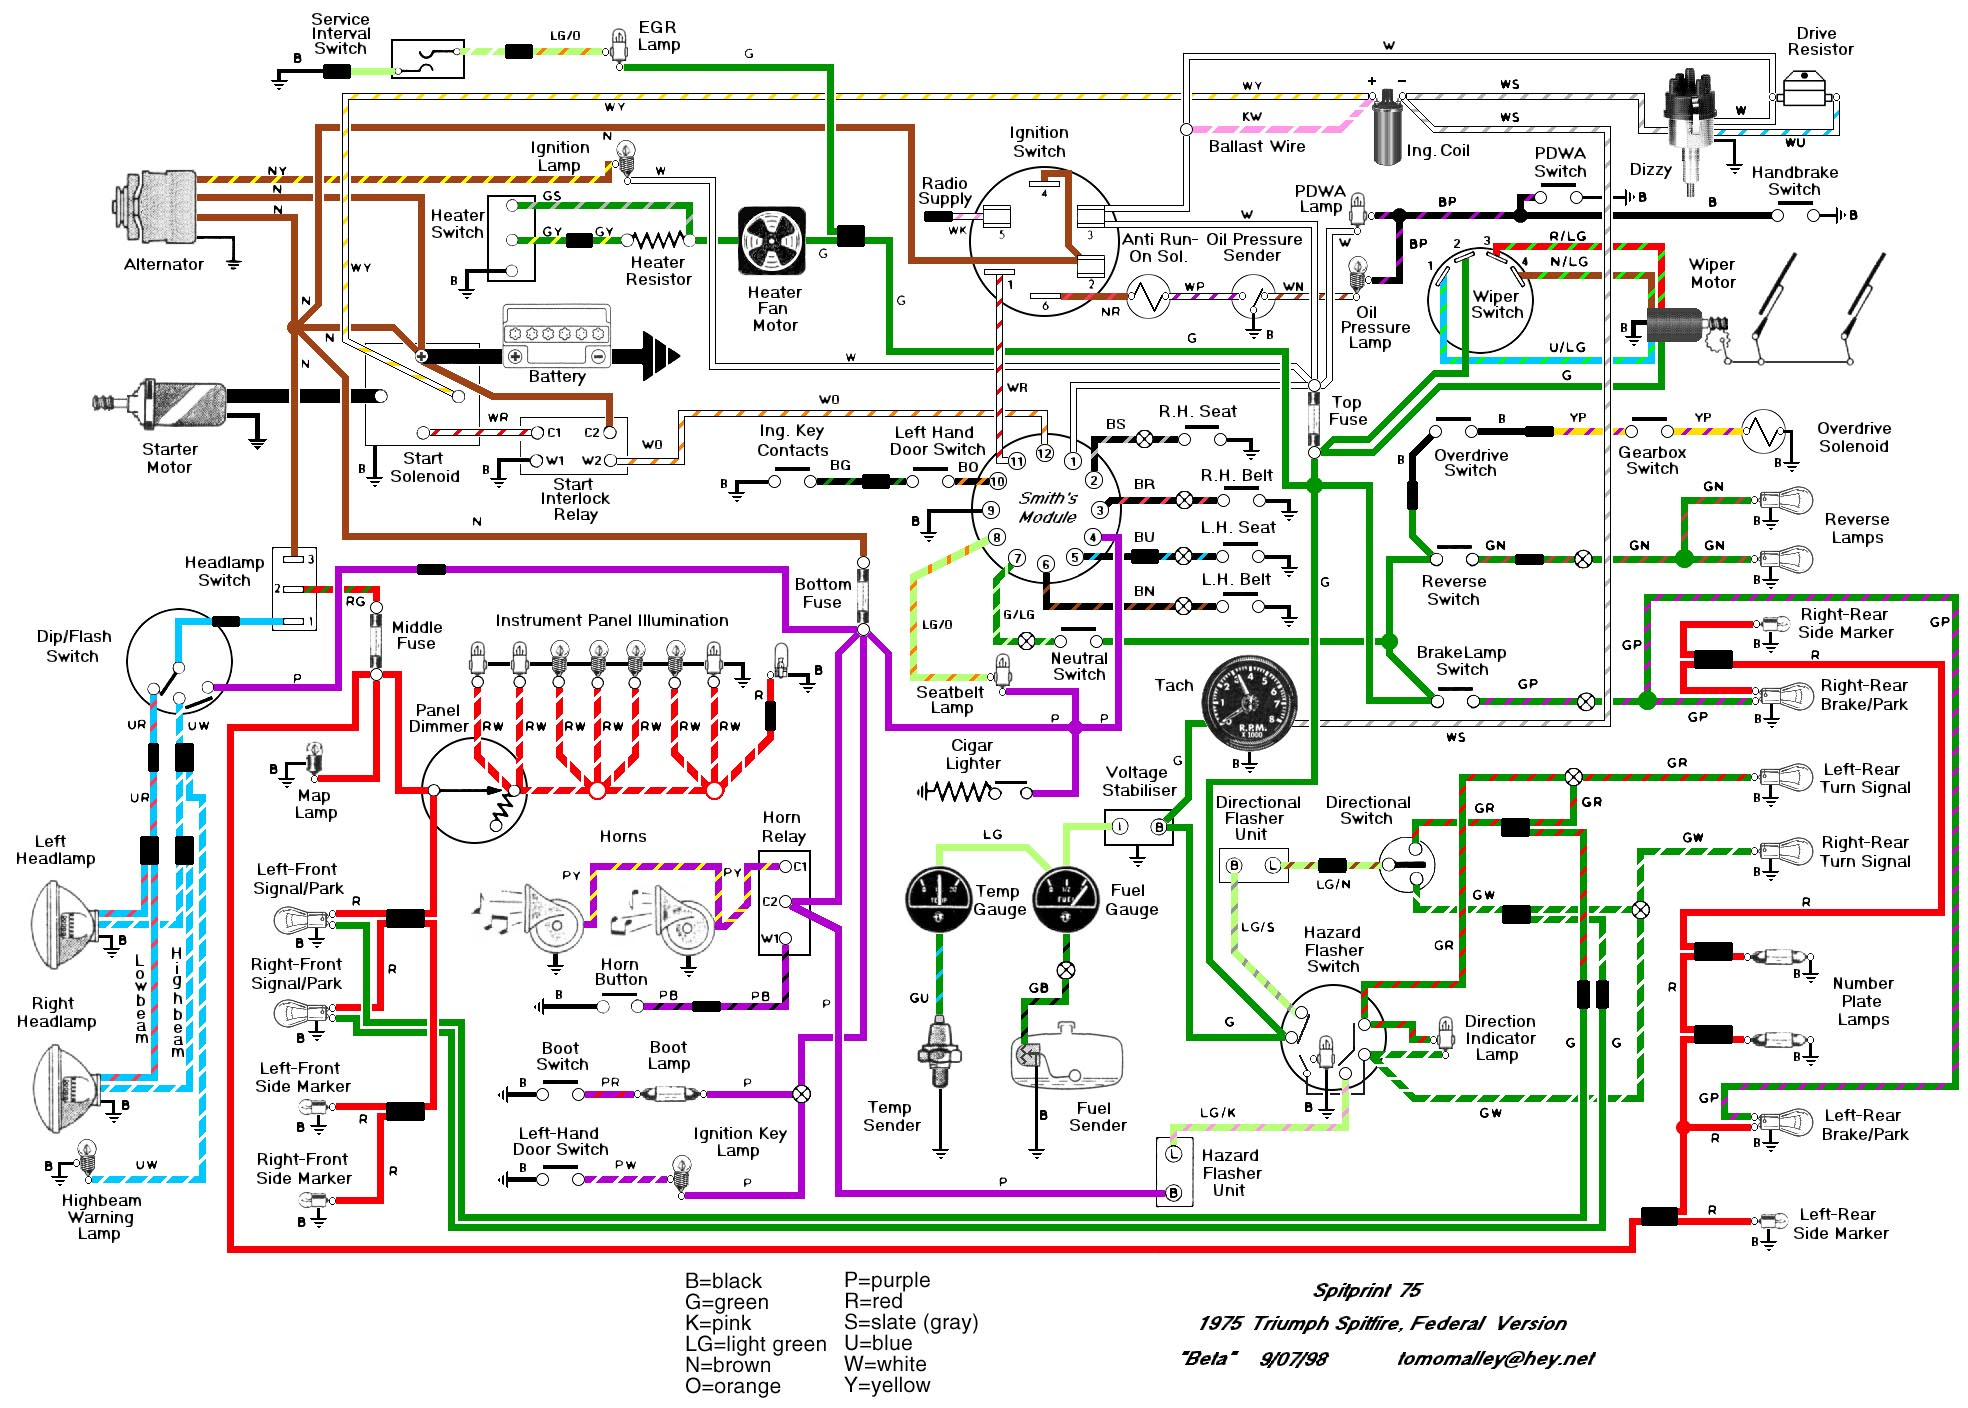 Tr250 Wiring Diagram - Wiring Diagrams Lol on 1968 triumph gt6 wiring diagram, 1970 vw bug wiring diagram, 1968 triumph spitfire wiring diagram, 2000 mercury marquis wiring diagram, 1969 mgb wiring diagram,